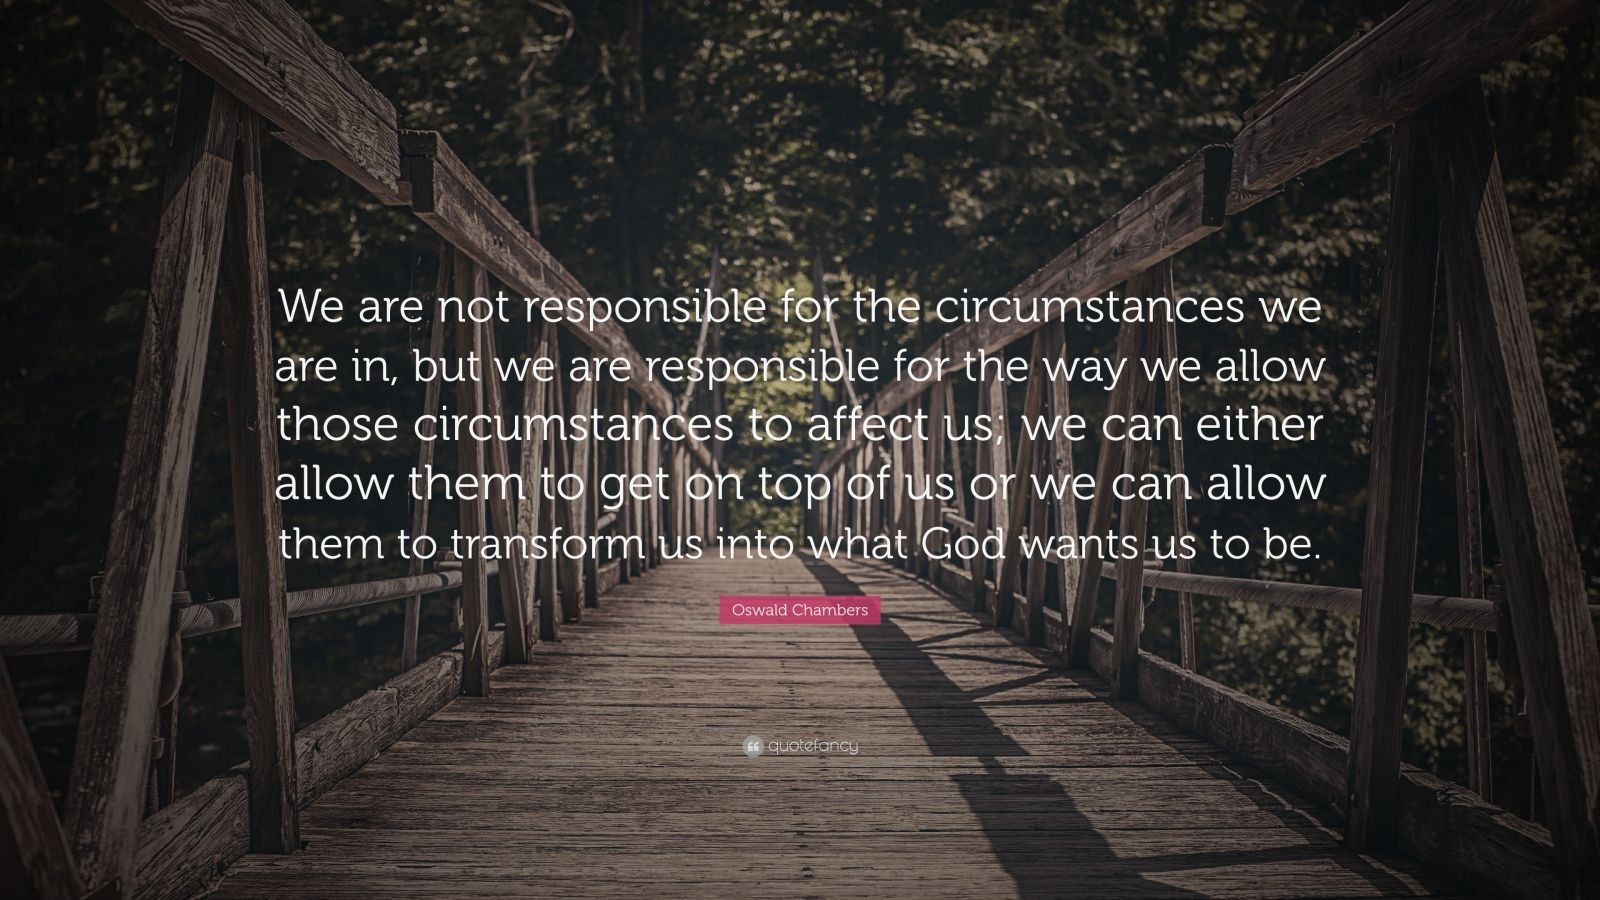 "Oswald Chambers Quote: ""We are not responsible for the circumstances we are in, but we are responsible for the way we allow those circumstances to affect us; we can either allow them to get on top of us or we can allow them to transform us into what God wants us to be."""